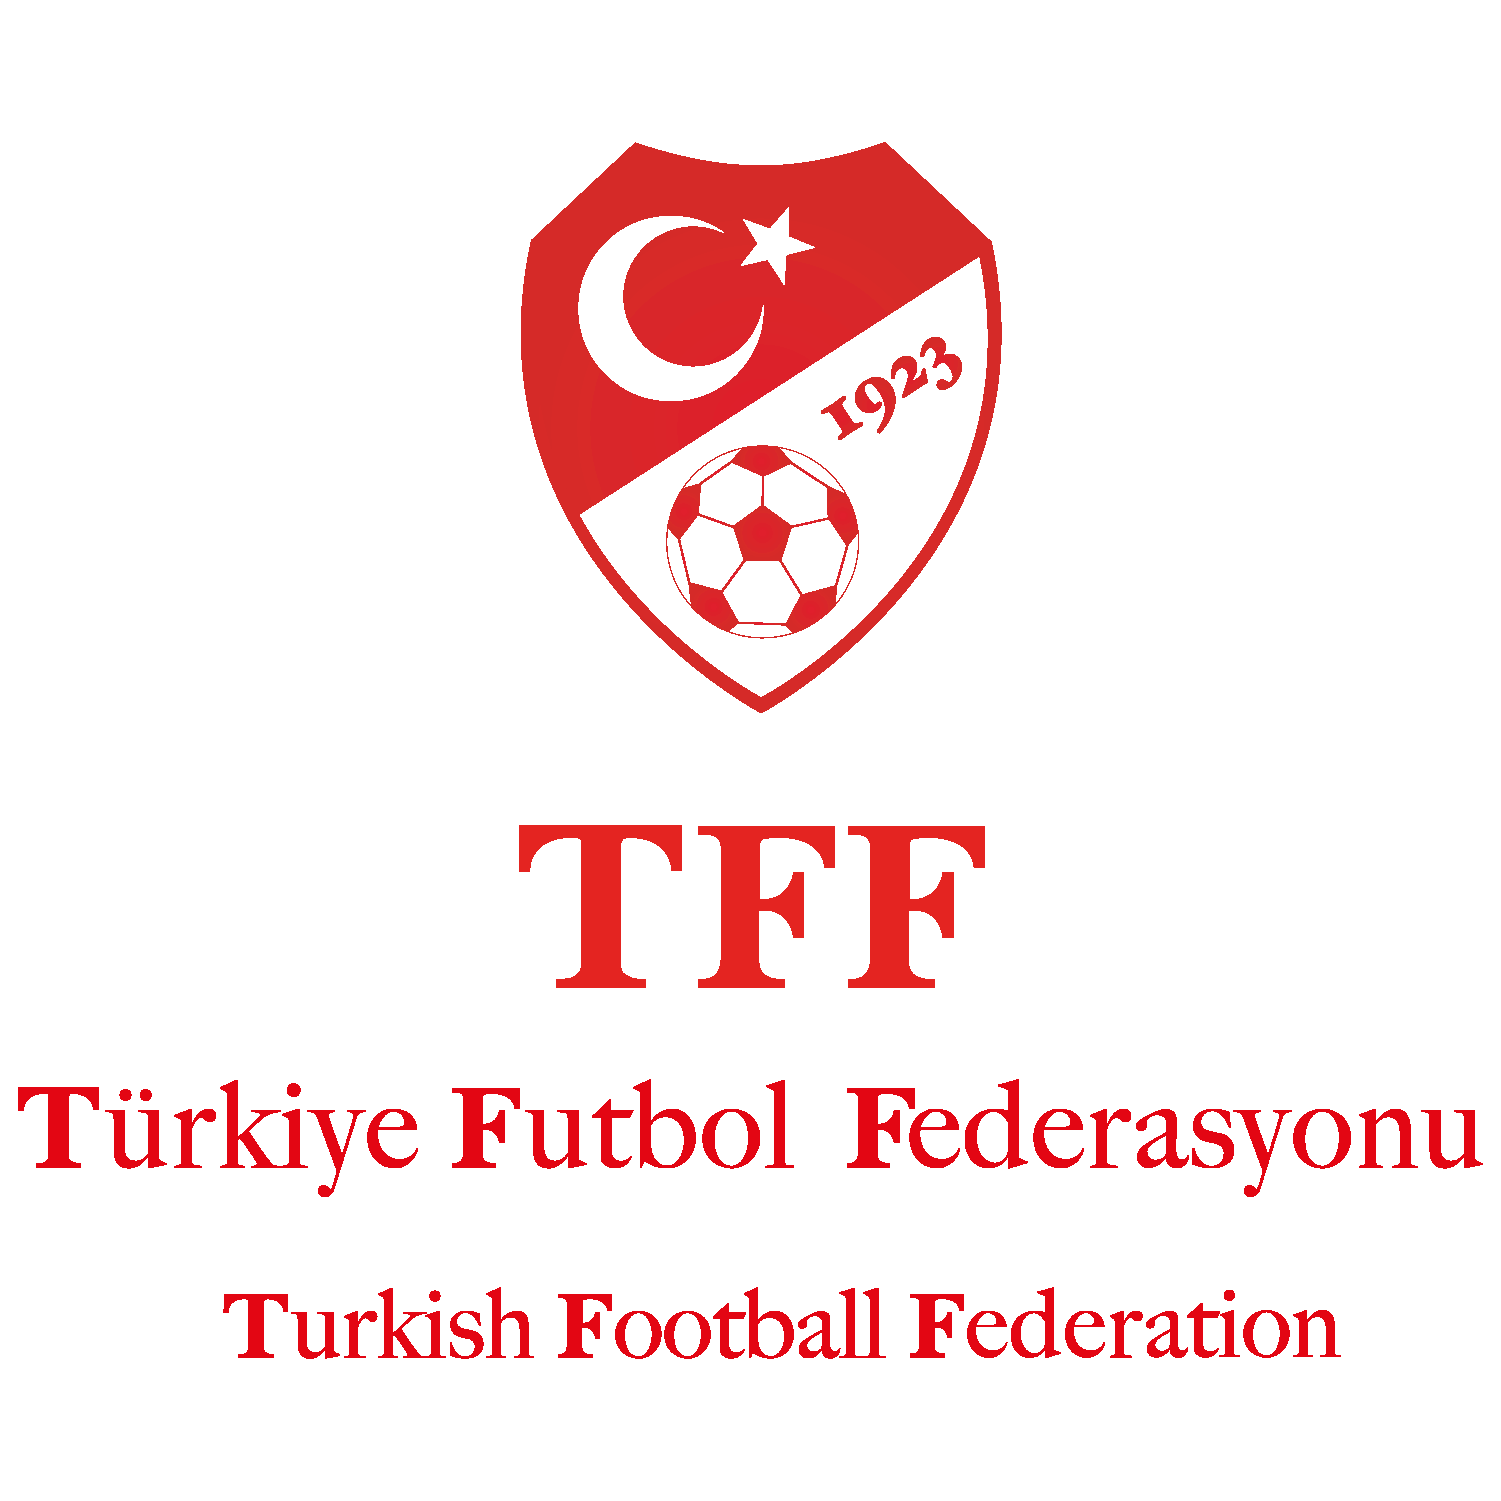 Turkey National Football Team Logo & Turkish Football Federation (TFF) Logo png